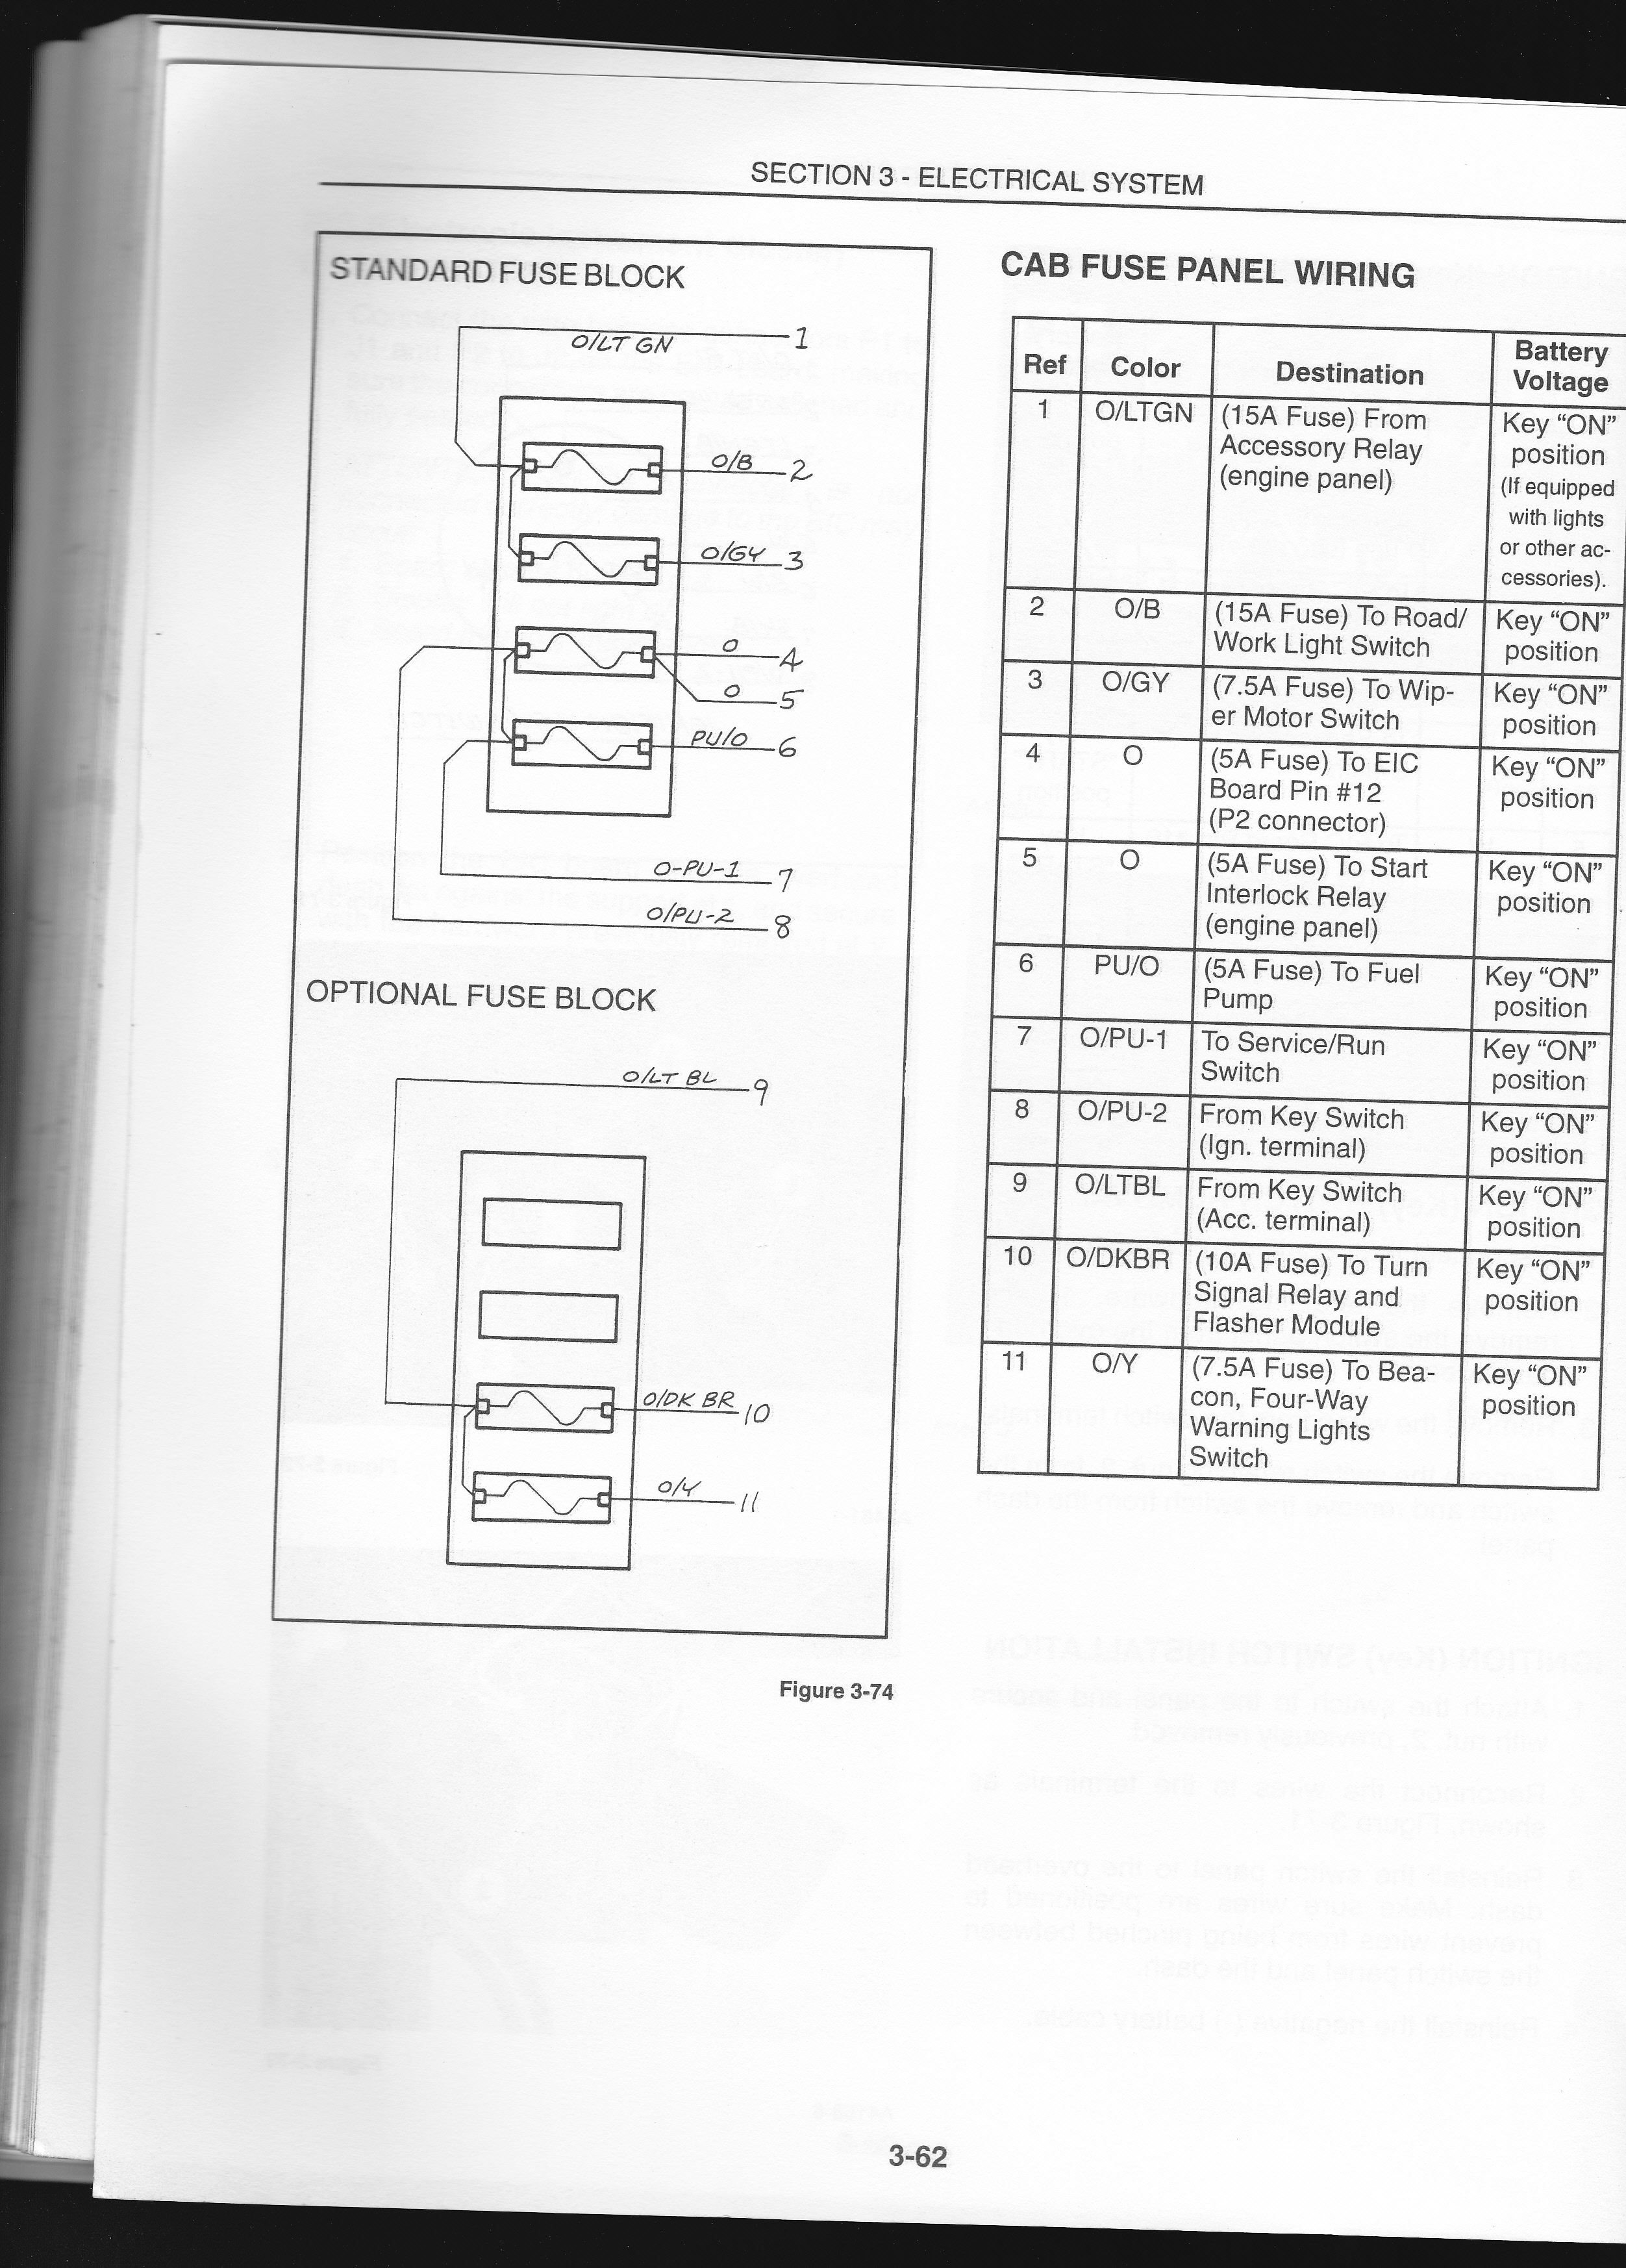 Lx865 Wiring Diagram Circuits Symbols Diagrams Sierra Rocker Switch Wire Block And Schematic Auto Electrical U2022 Rh 6weeks Co Uk